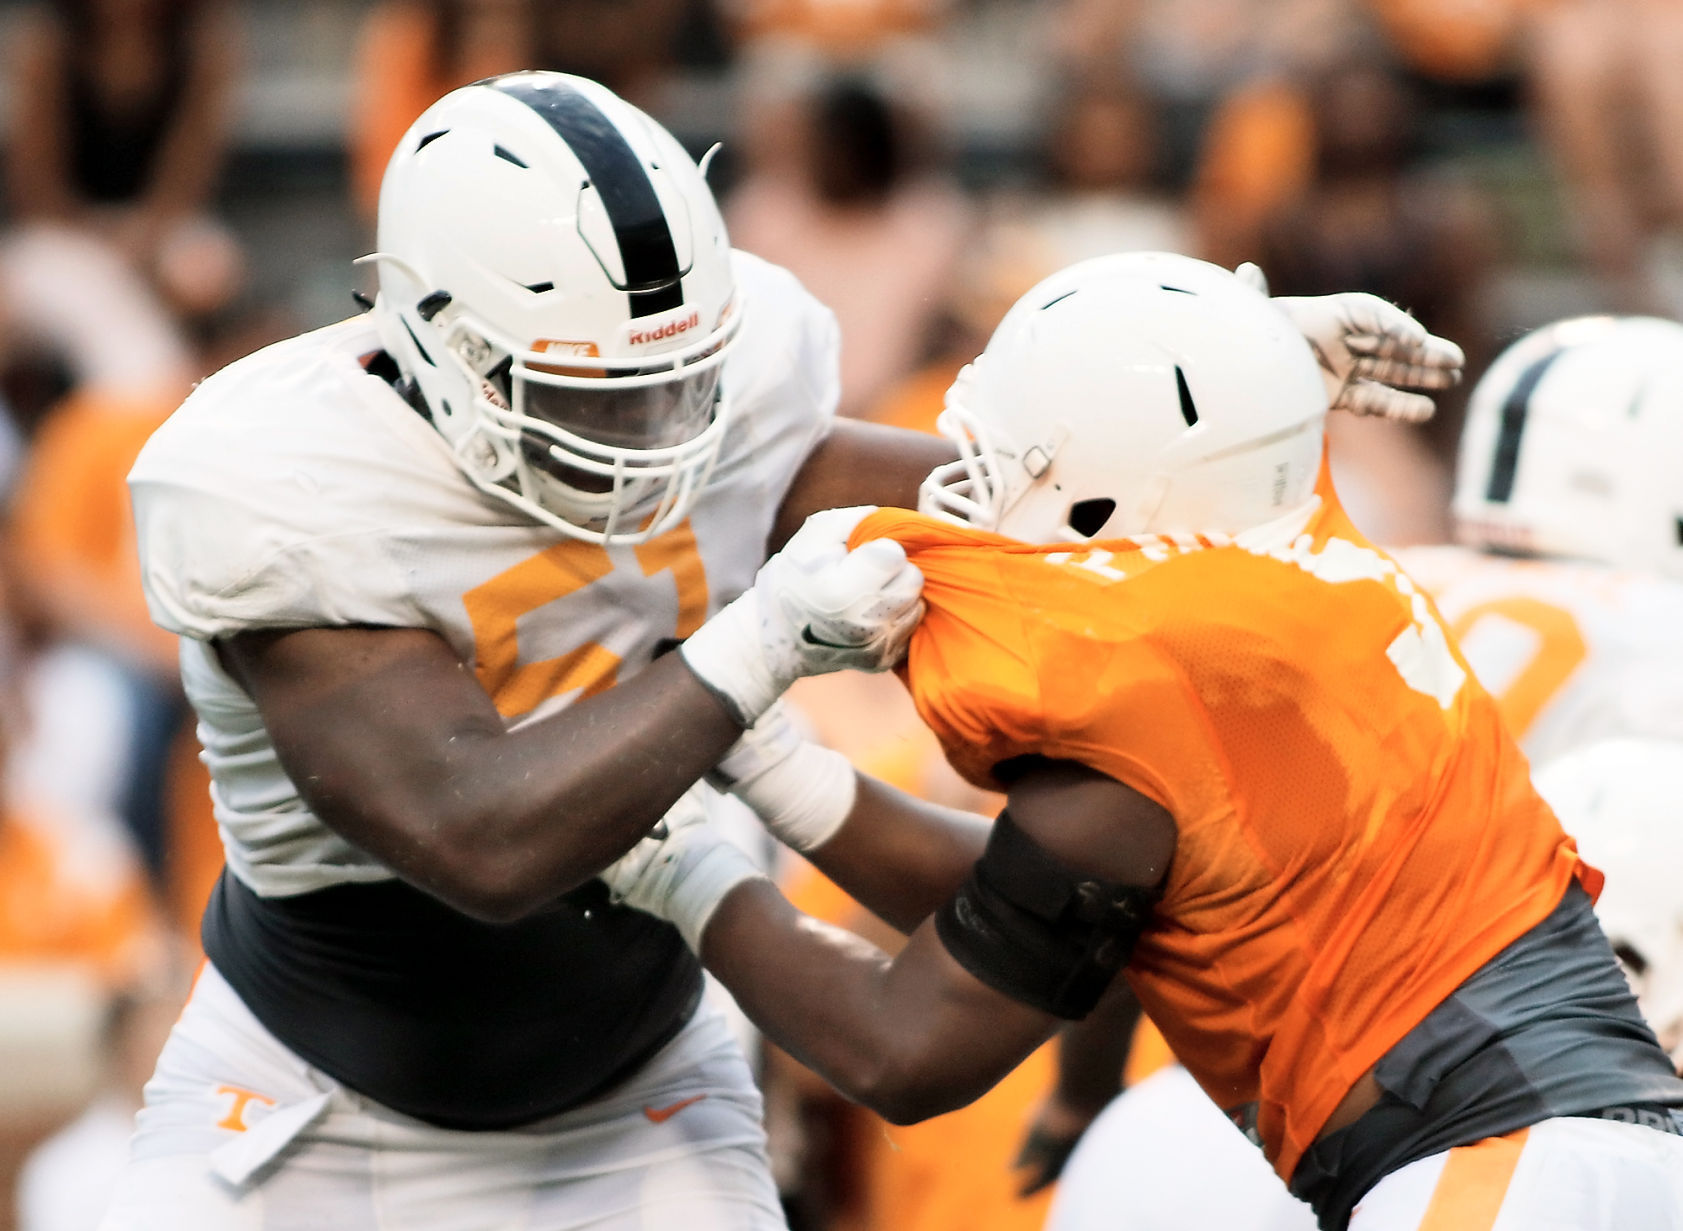 Butch Jones confirms Tennessee linebacker Darrin Kirkland Jr. will miss season